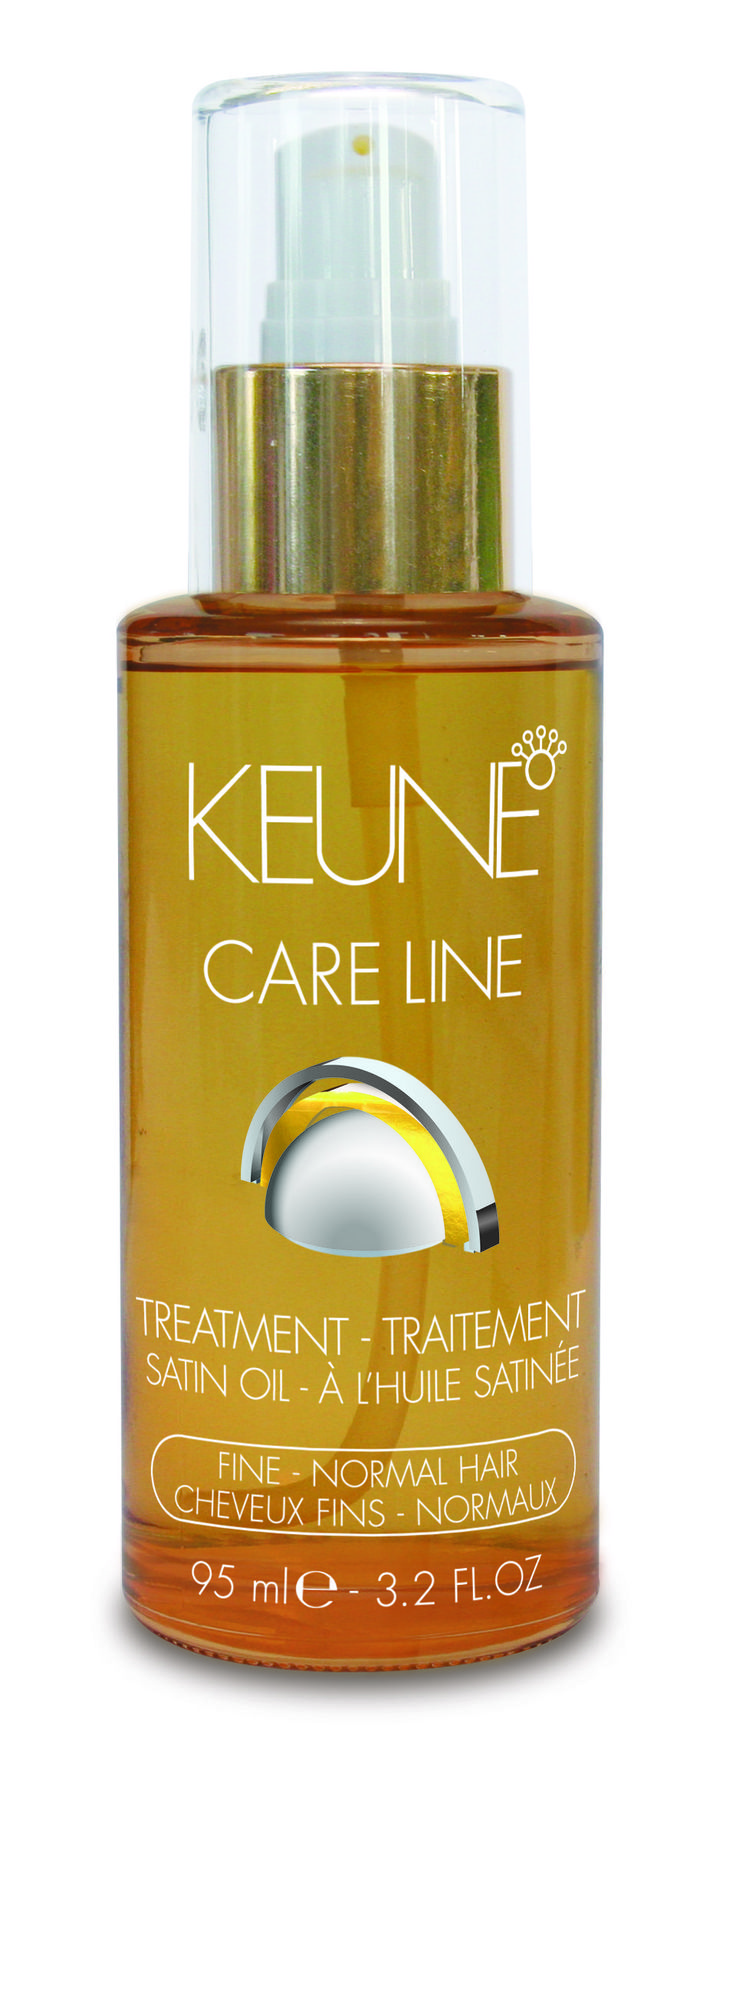 Care Line Satin Oil Treatment